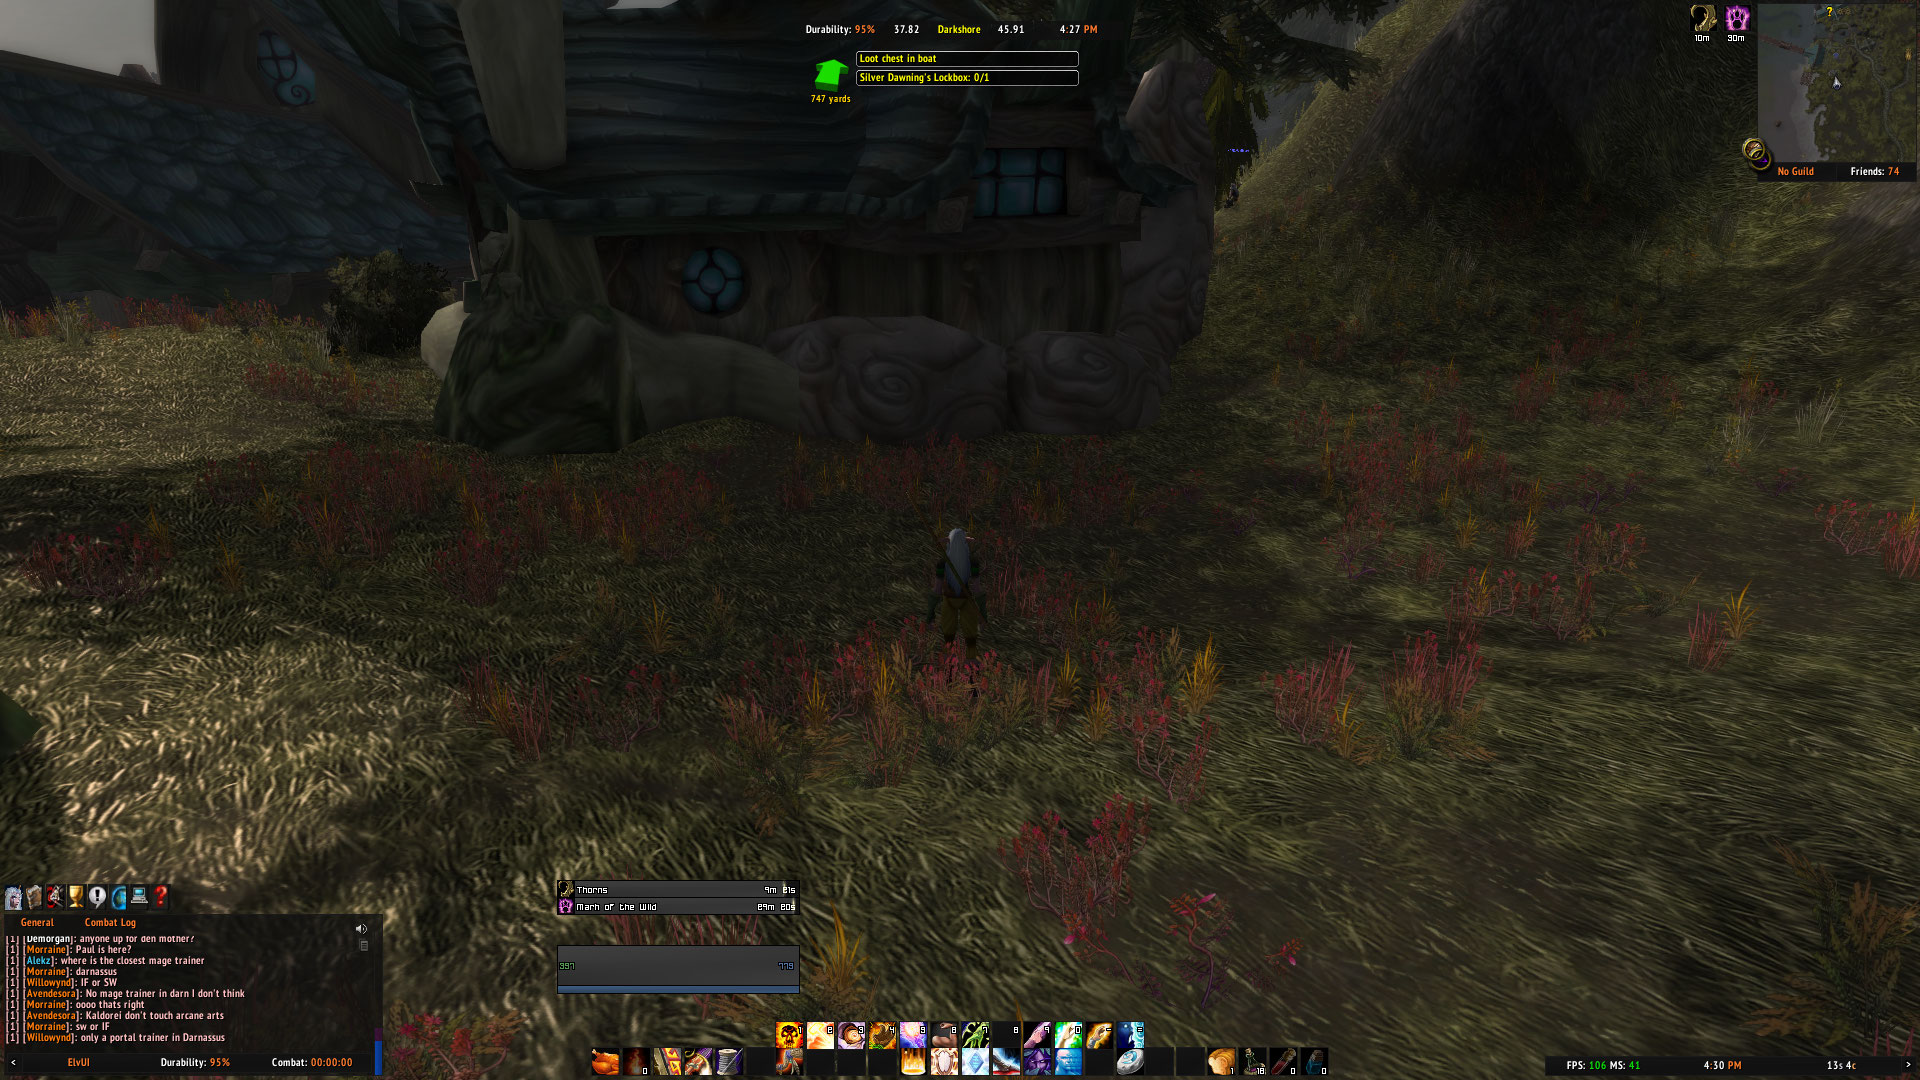 Azeroth Auto Pilot addon - Right Way = Green Arrow